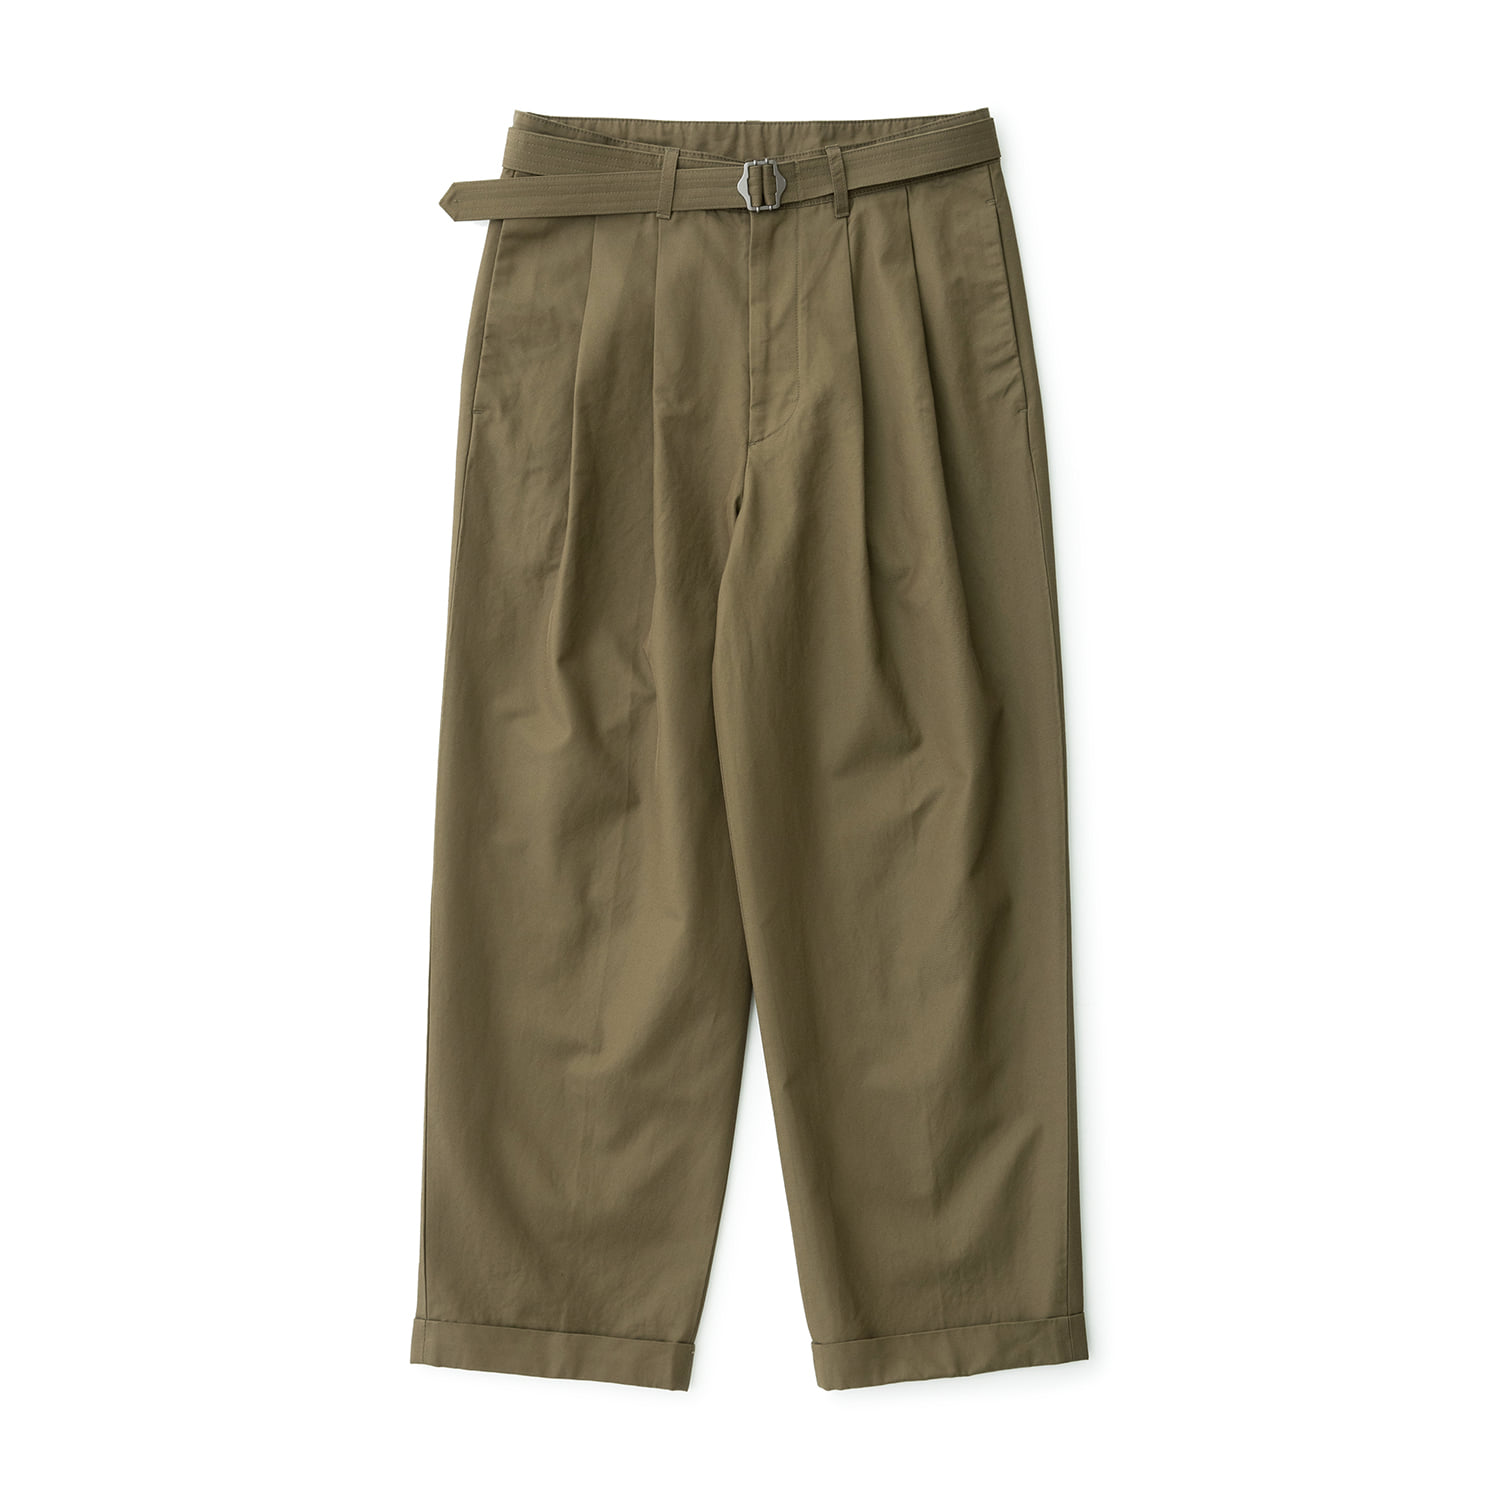 Balance Belted Turn Up Pants (Tate Olive)